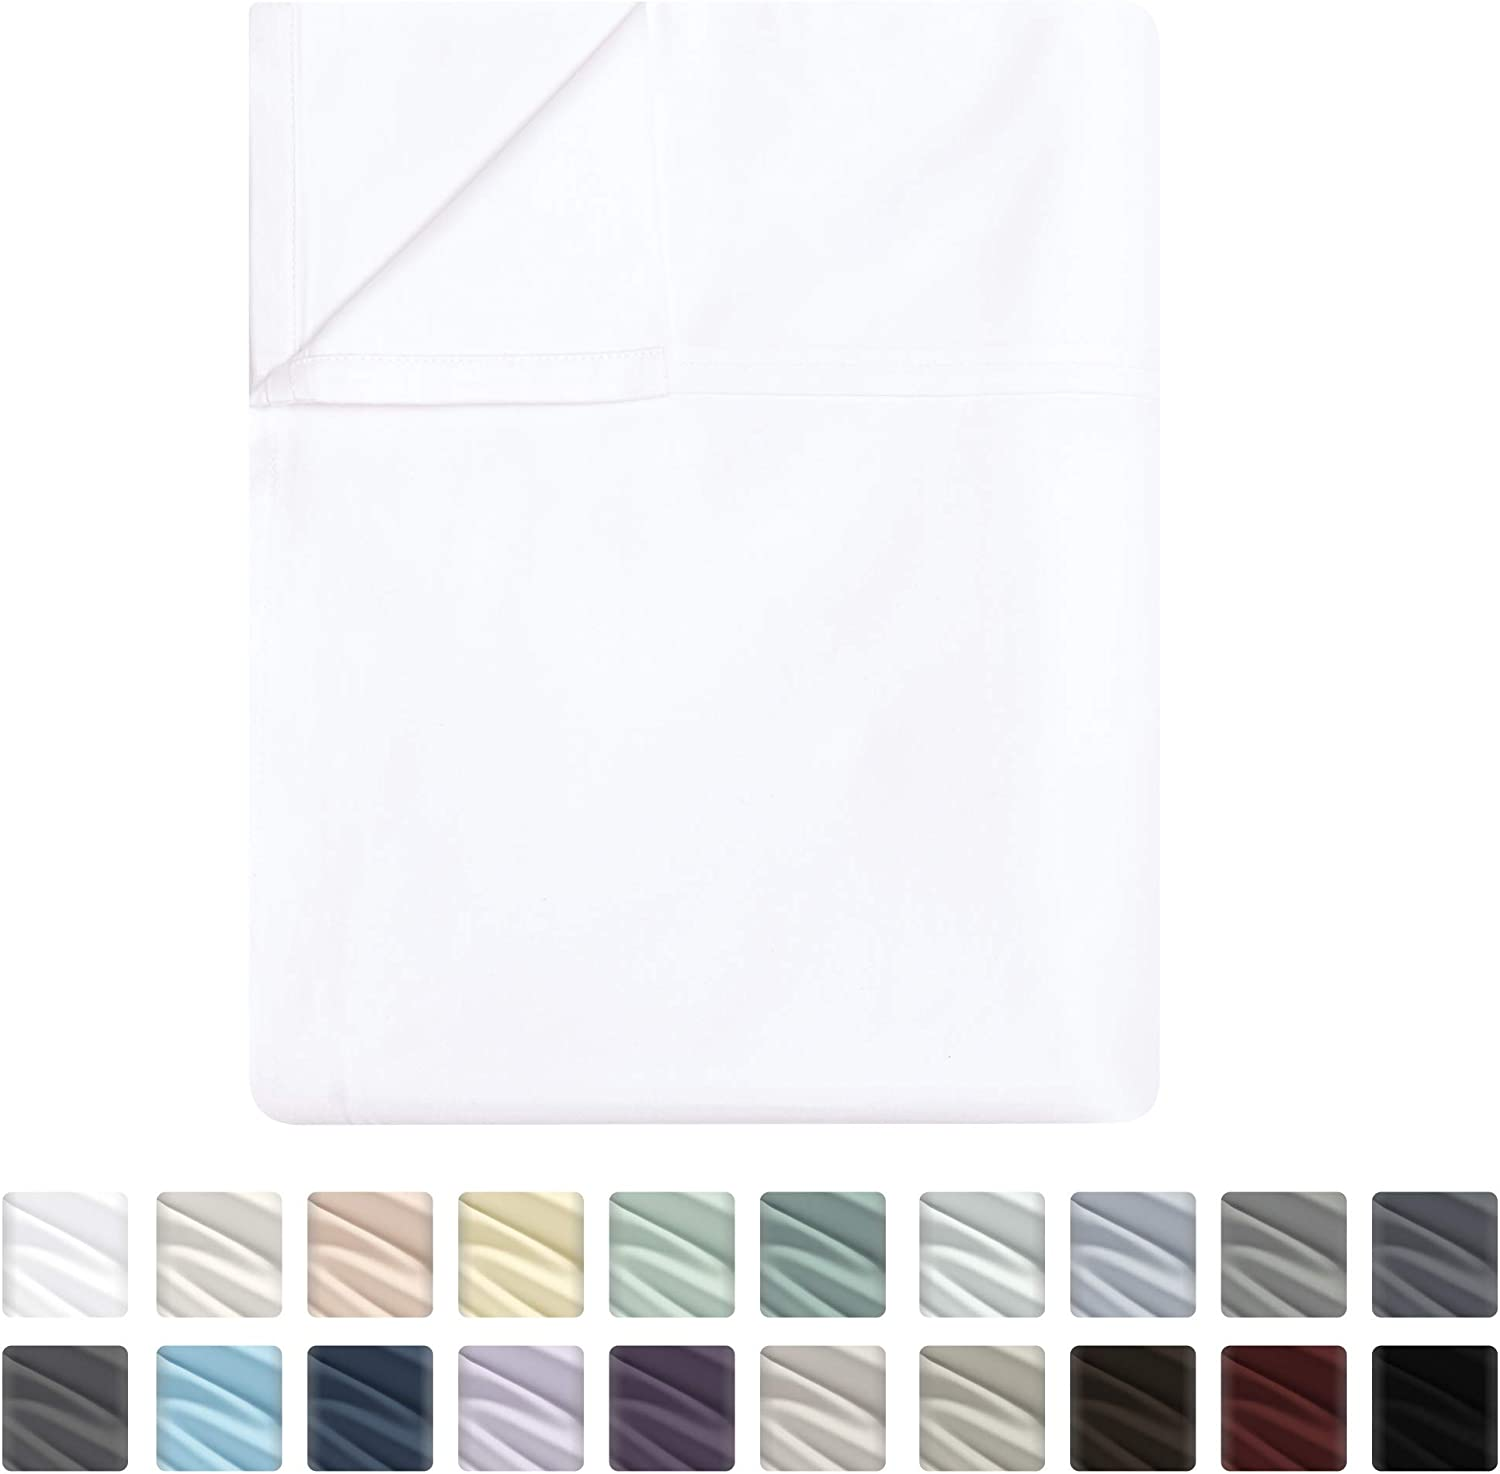 Flat Sheet Only - 400-Thread-Count King Size Pure White Top Sheet - Best Premium Quality Sheet on Amazon - Luxury Soft 100% Cotton Sateen Weave Bedding, Lightweight and Breathable